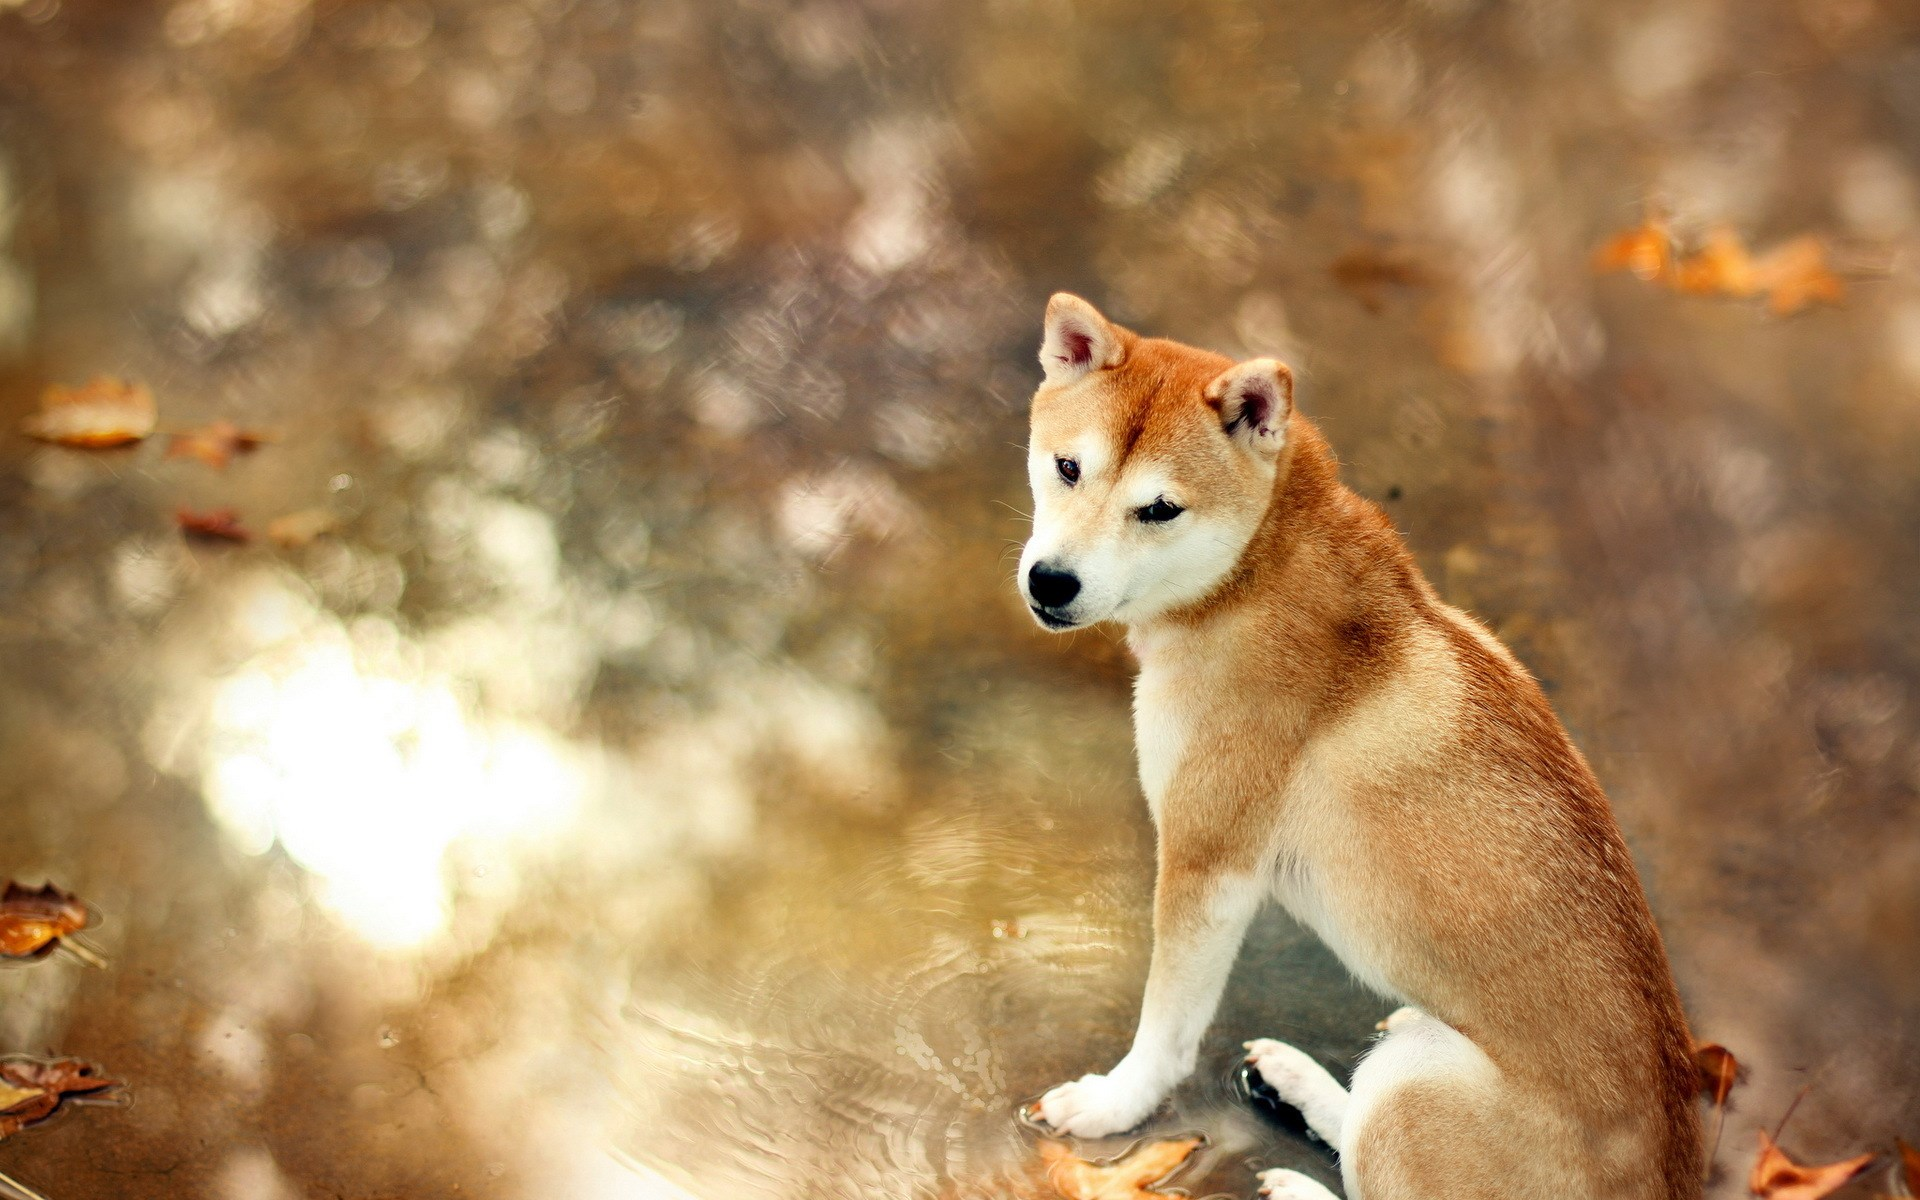 Cute Photography Wallpaper Dog Wallpapers Archives Page 7 Of 9 Hd Desktop